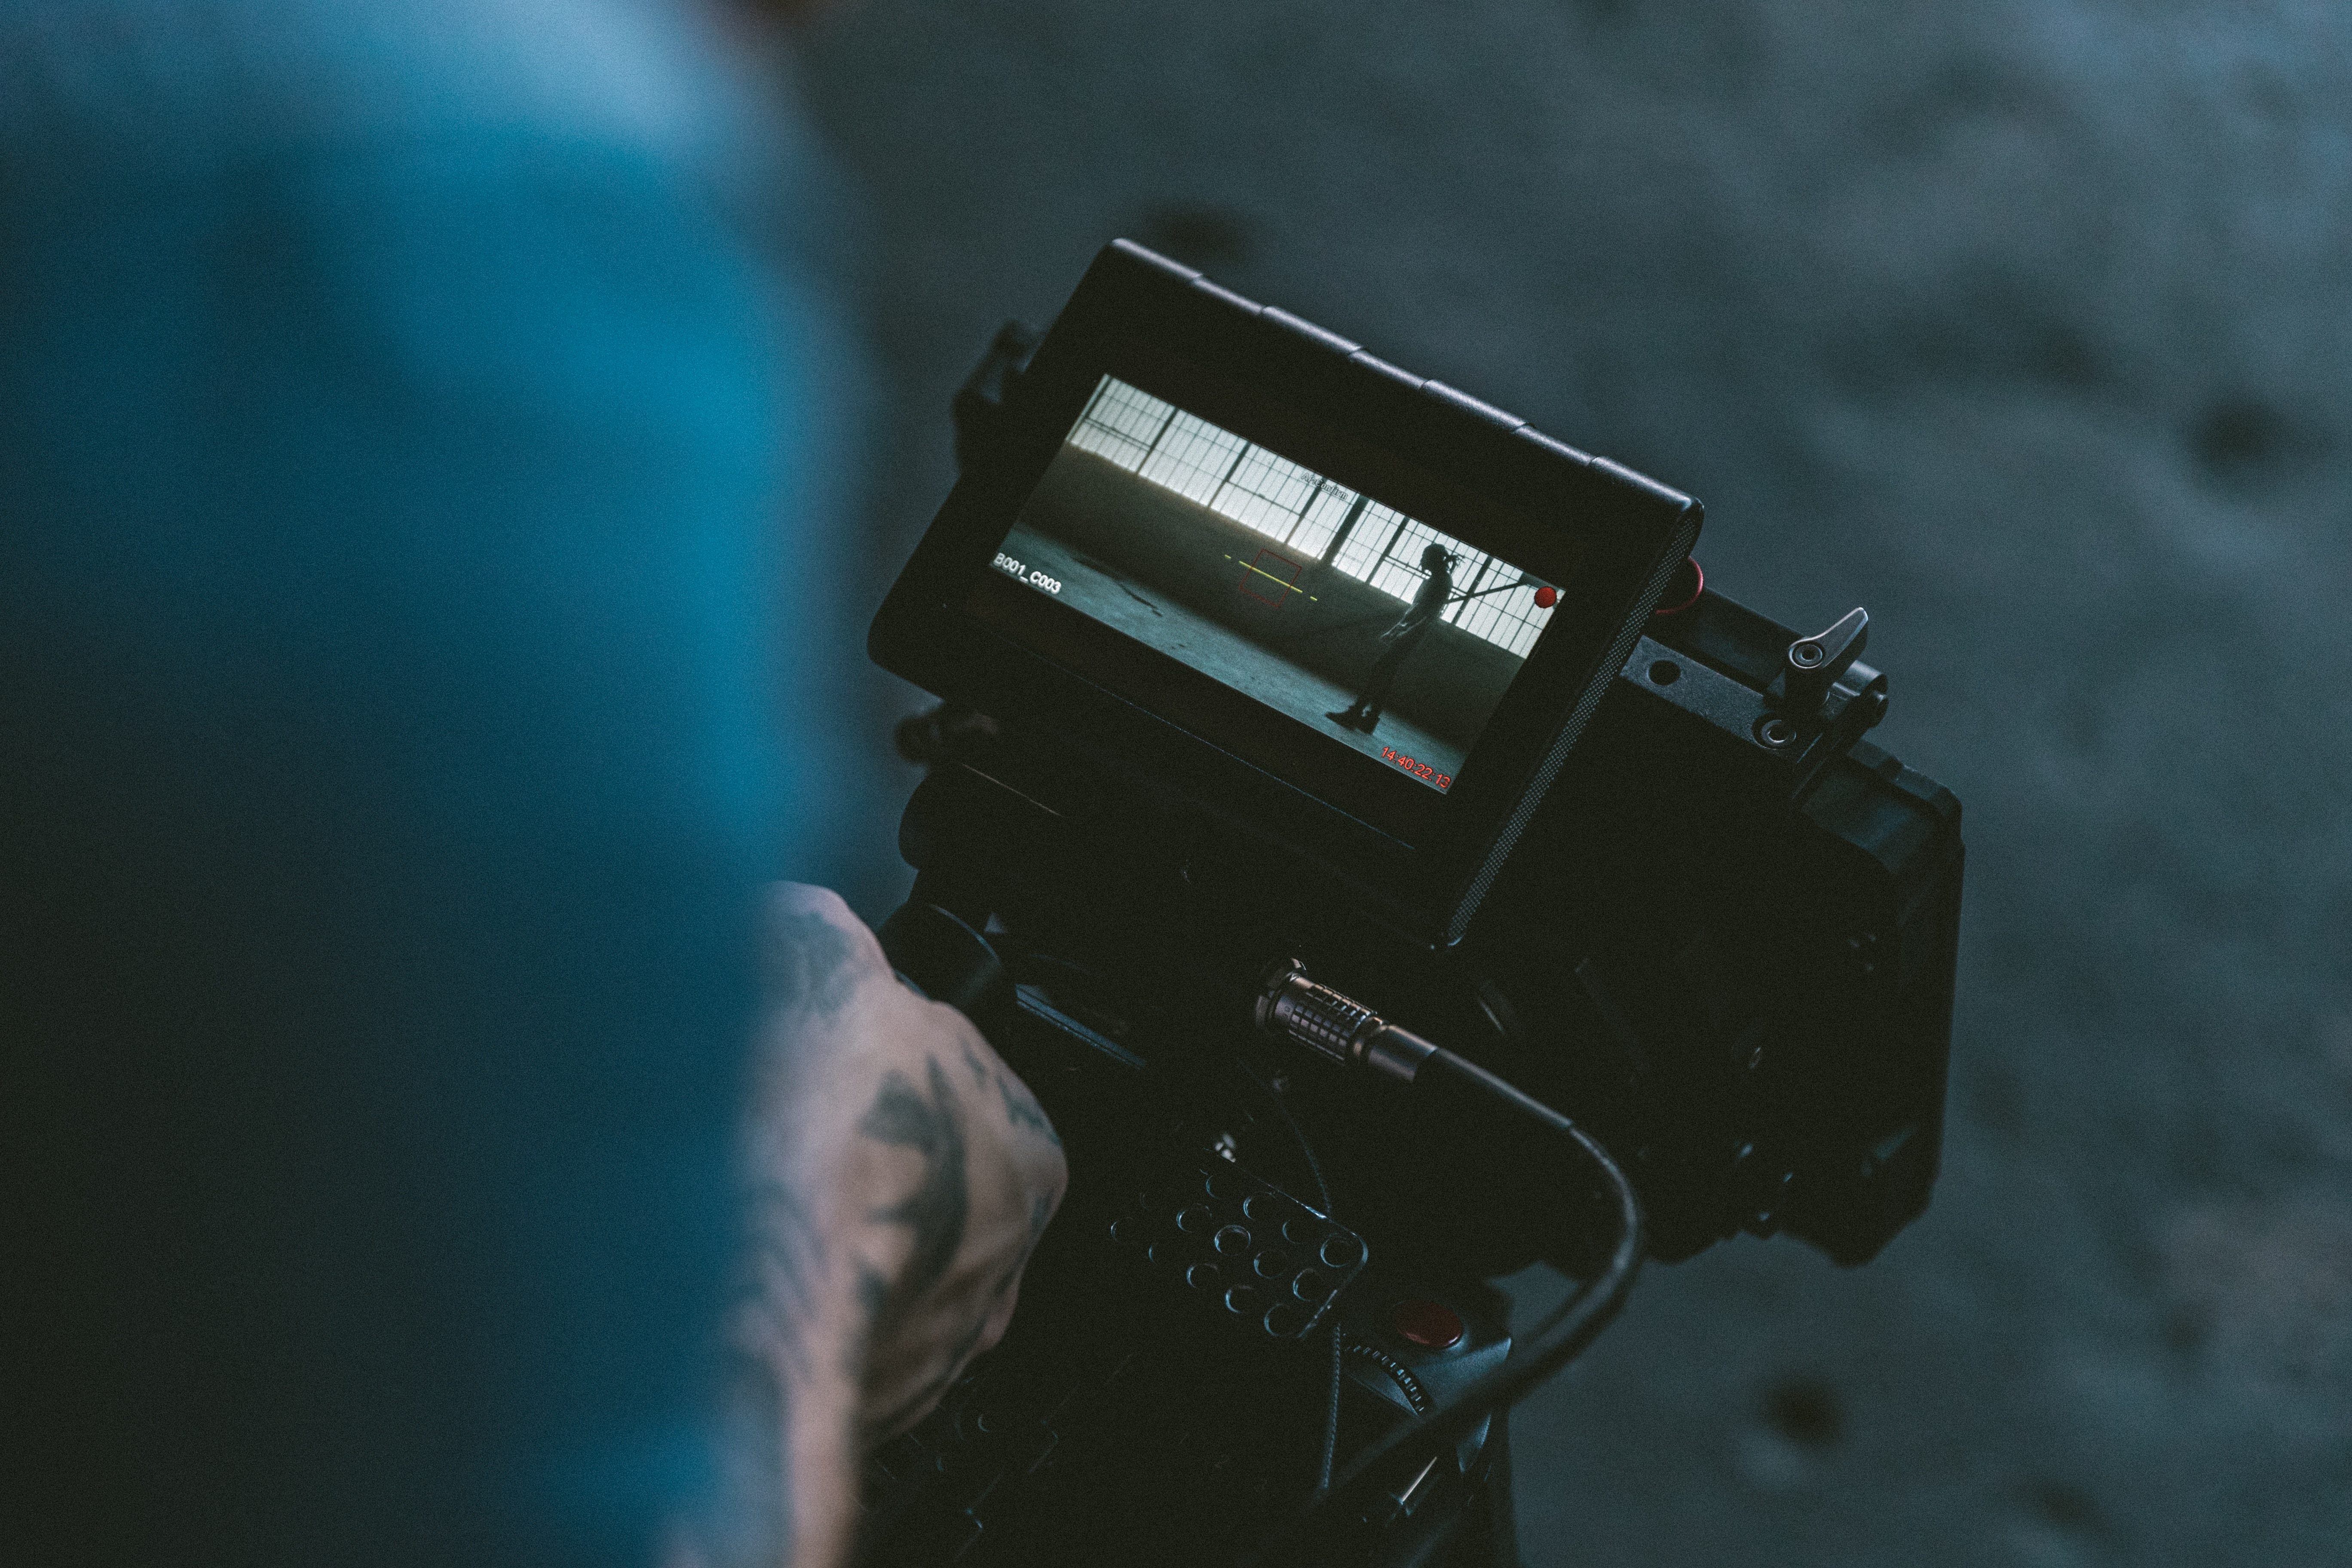 A close-up of a video camera screen during recording